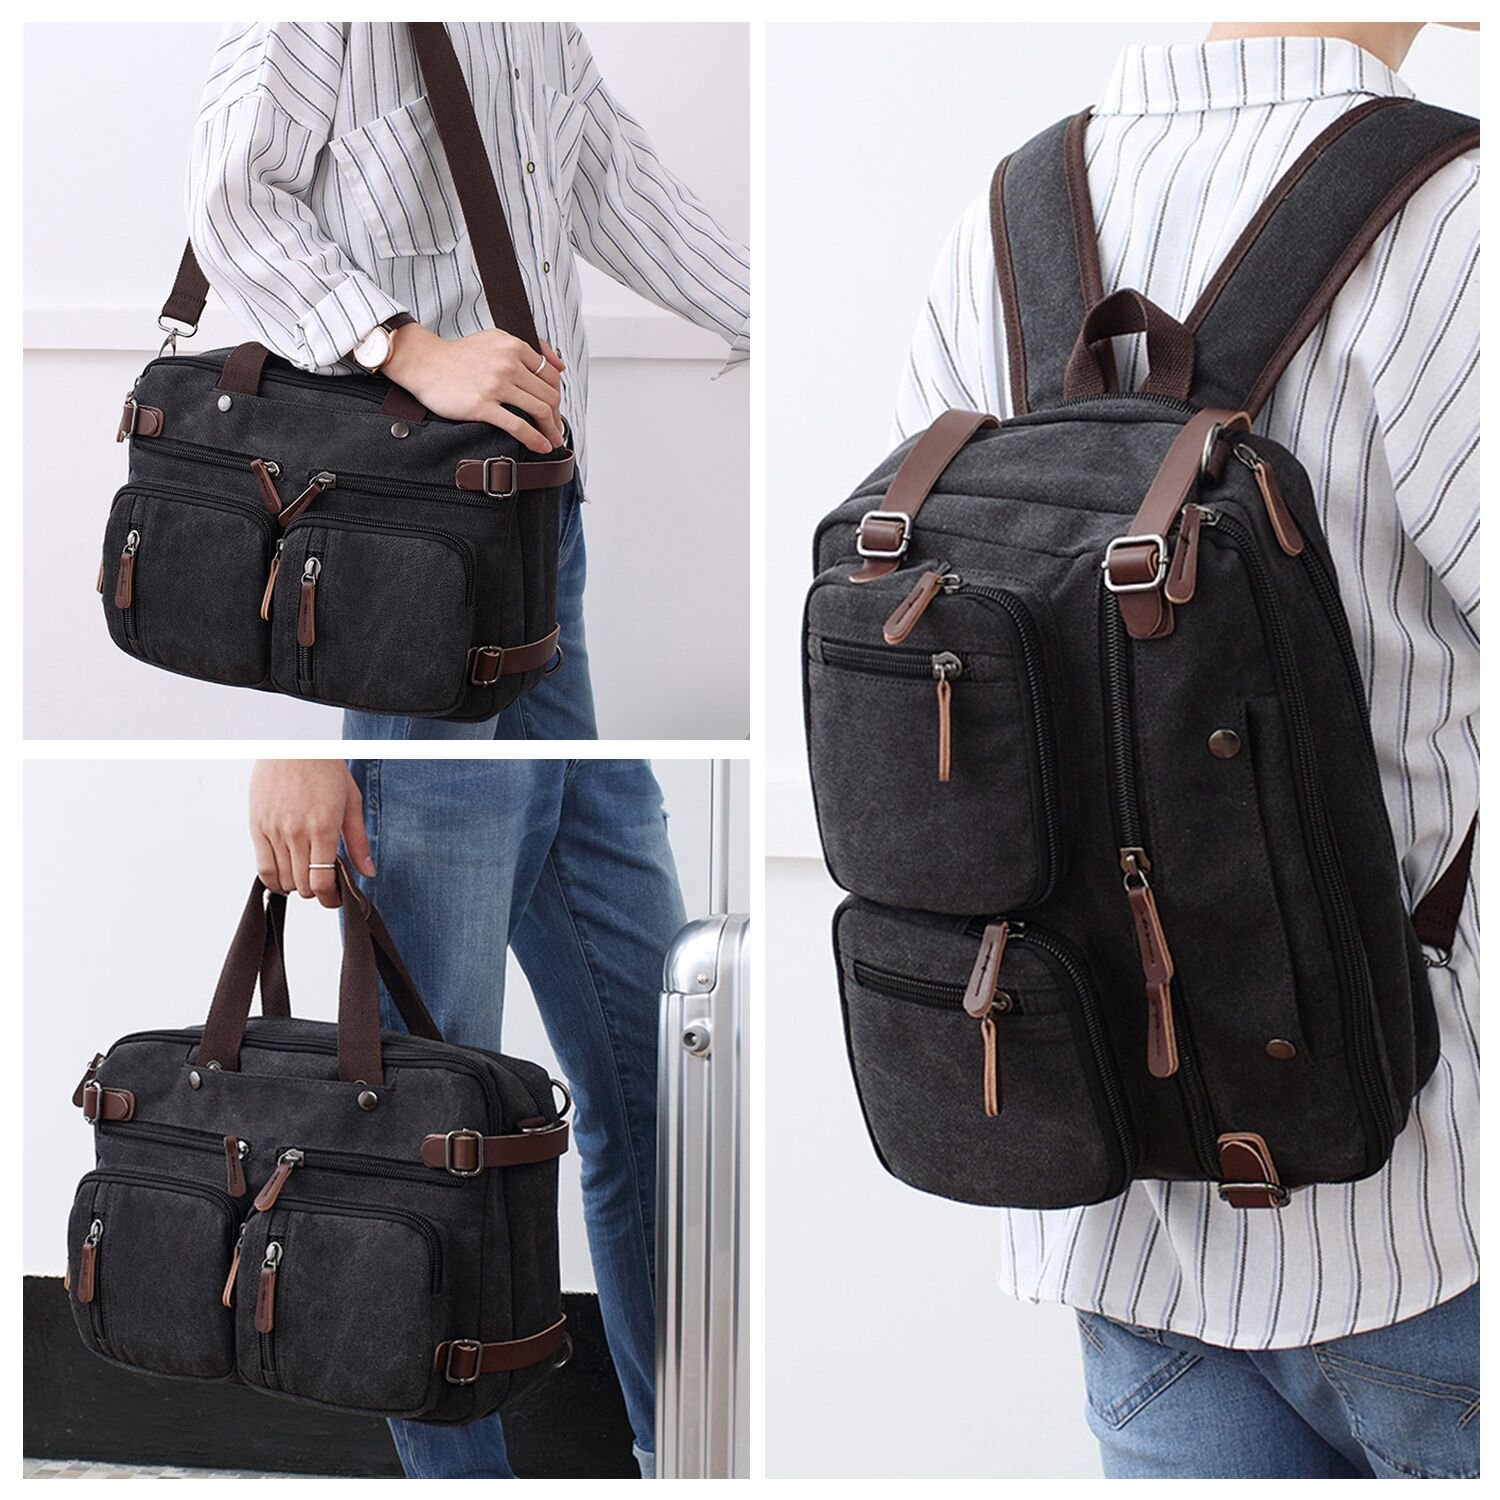 Fresion Retro Canvas Backpack Hybrid Laptop Messenger Bag Casual Bookbag for Teens School Hiking Travel Camping fit 14\